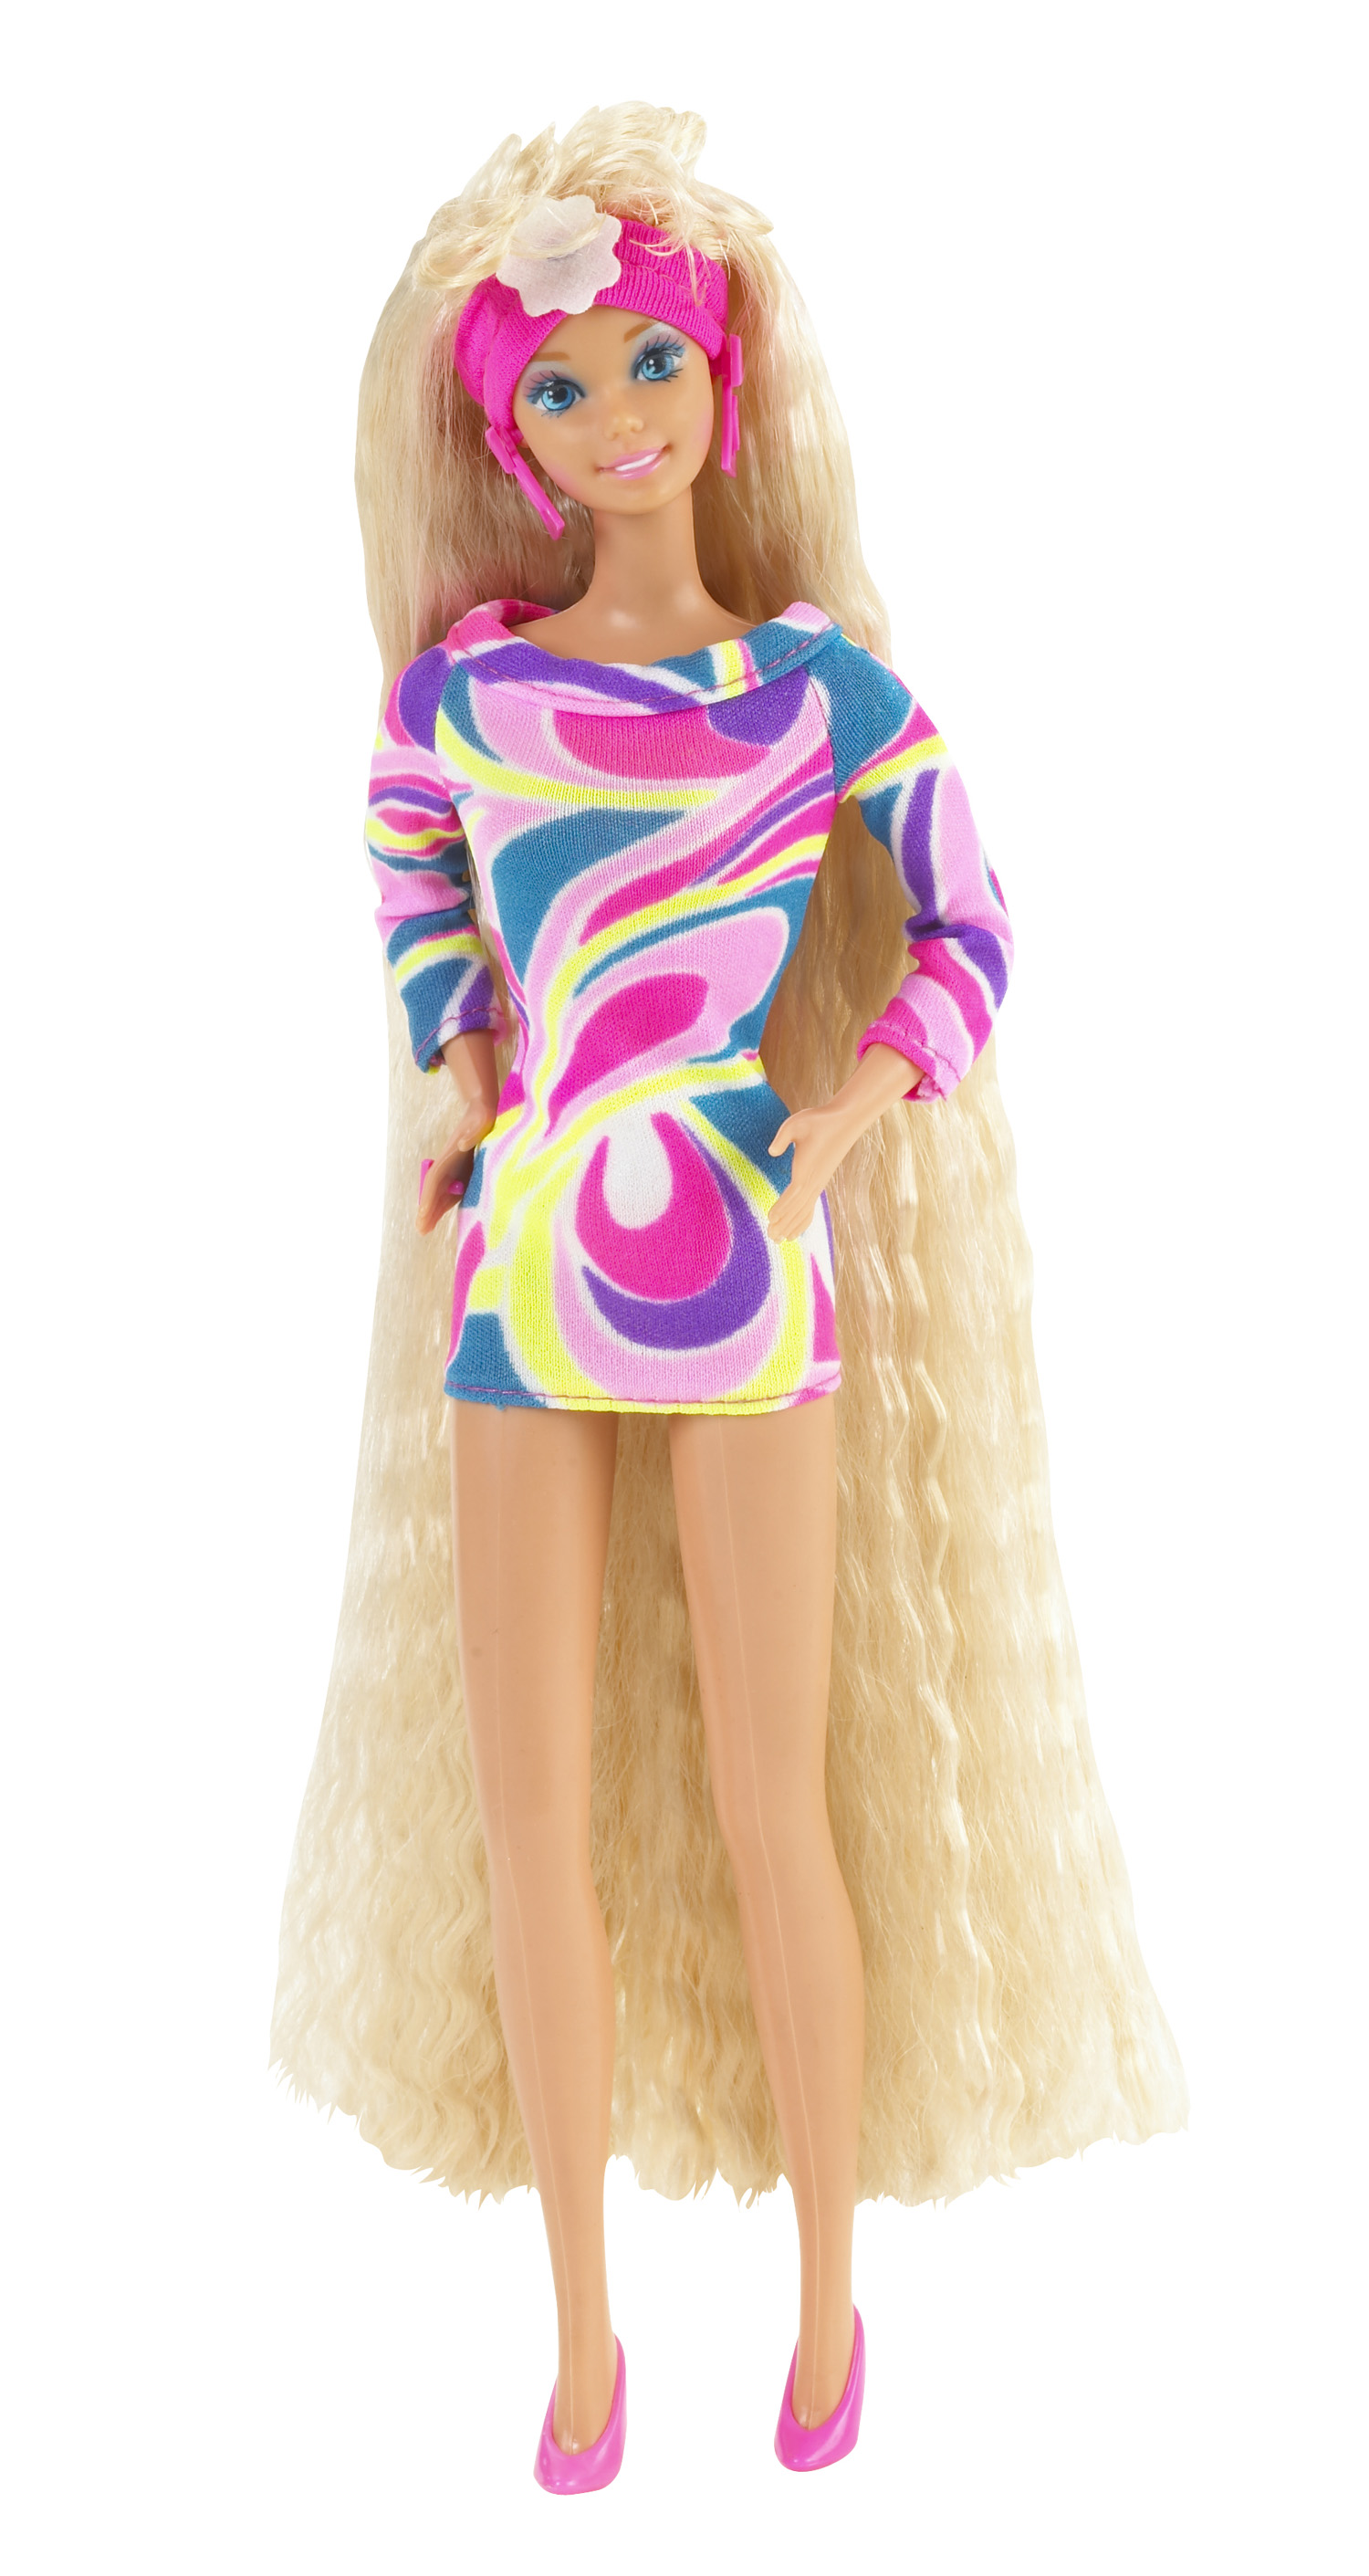 Most Expensive Barbie Dolls All Time